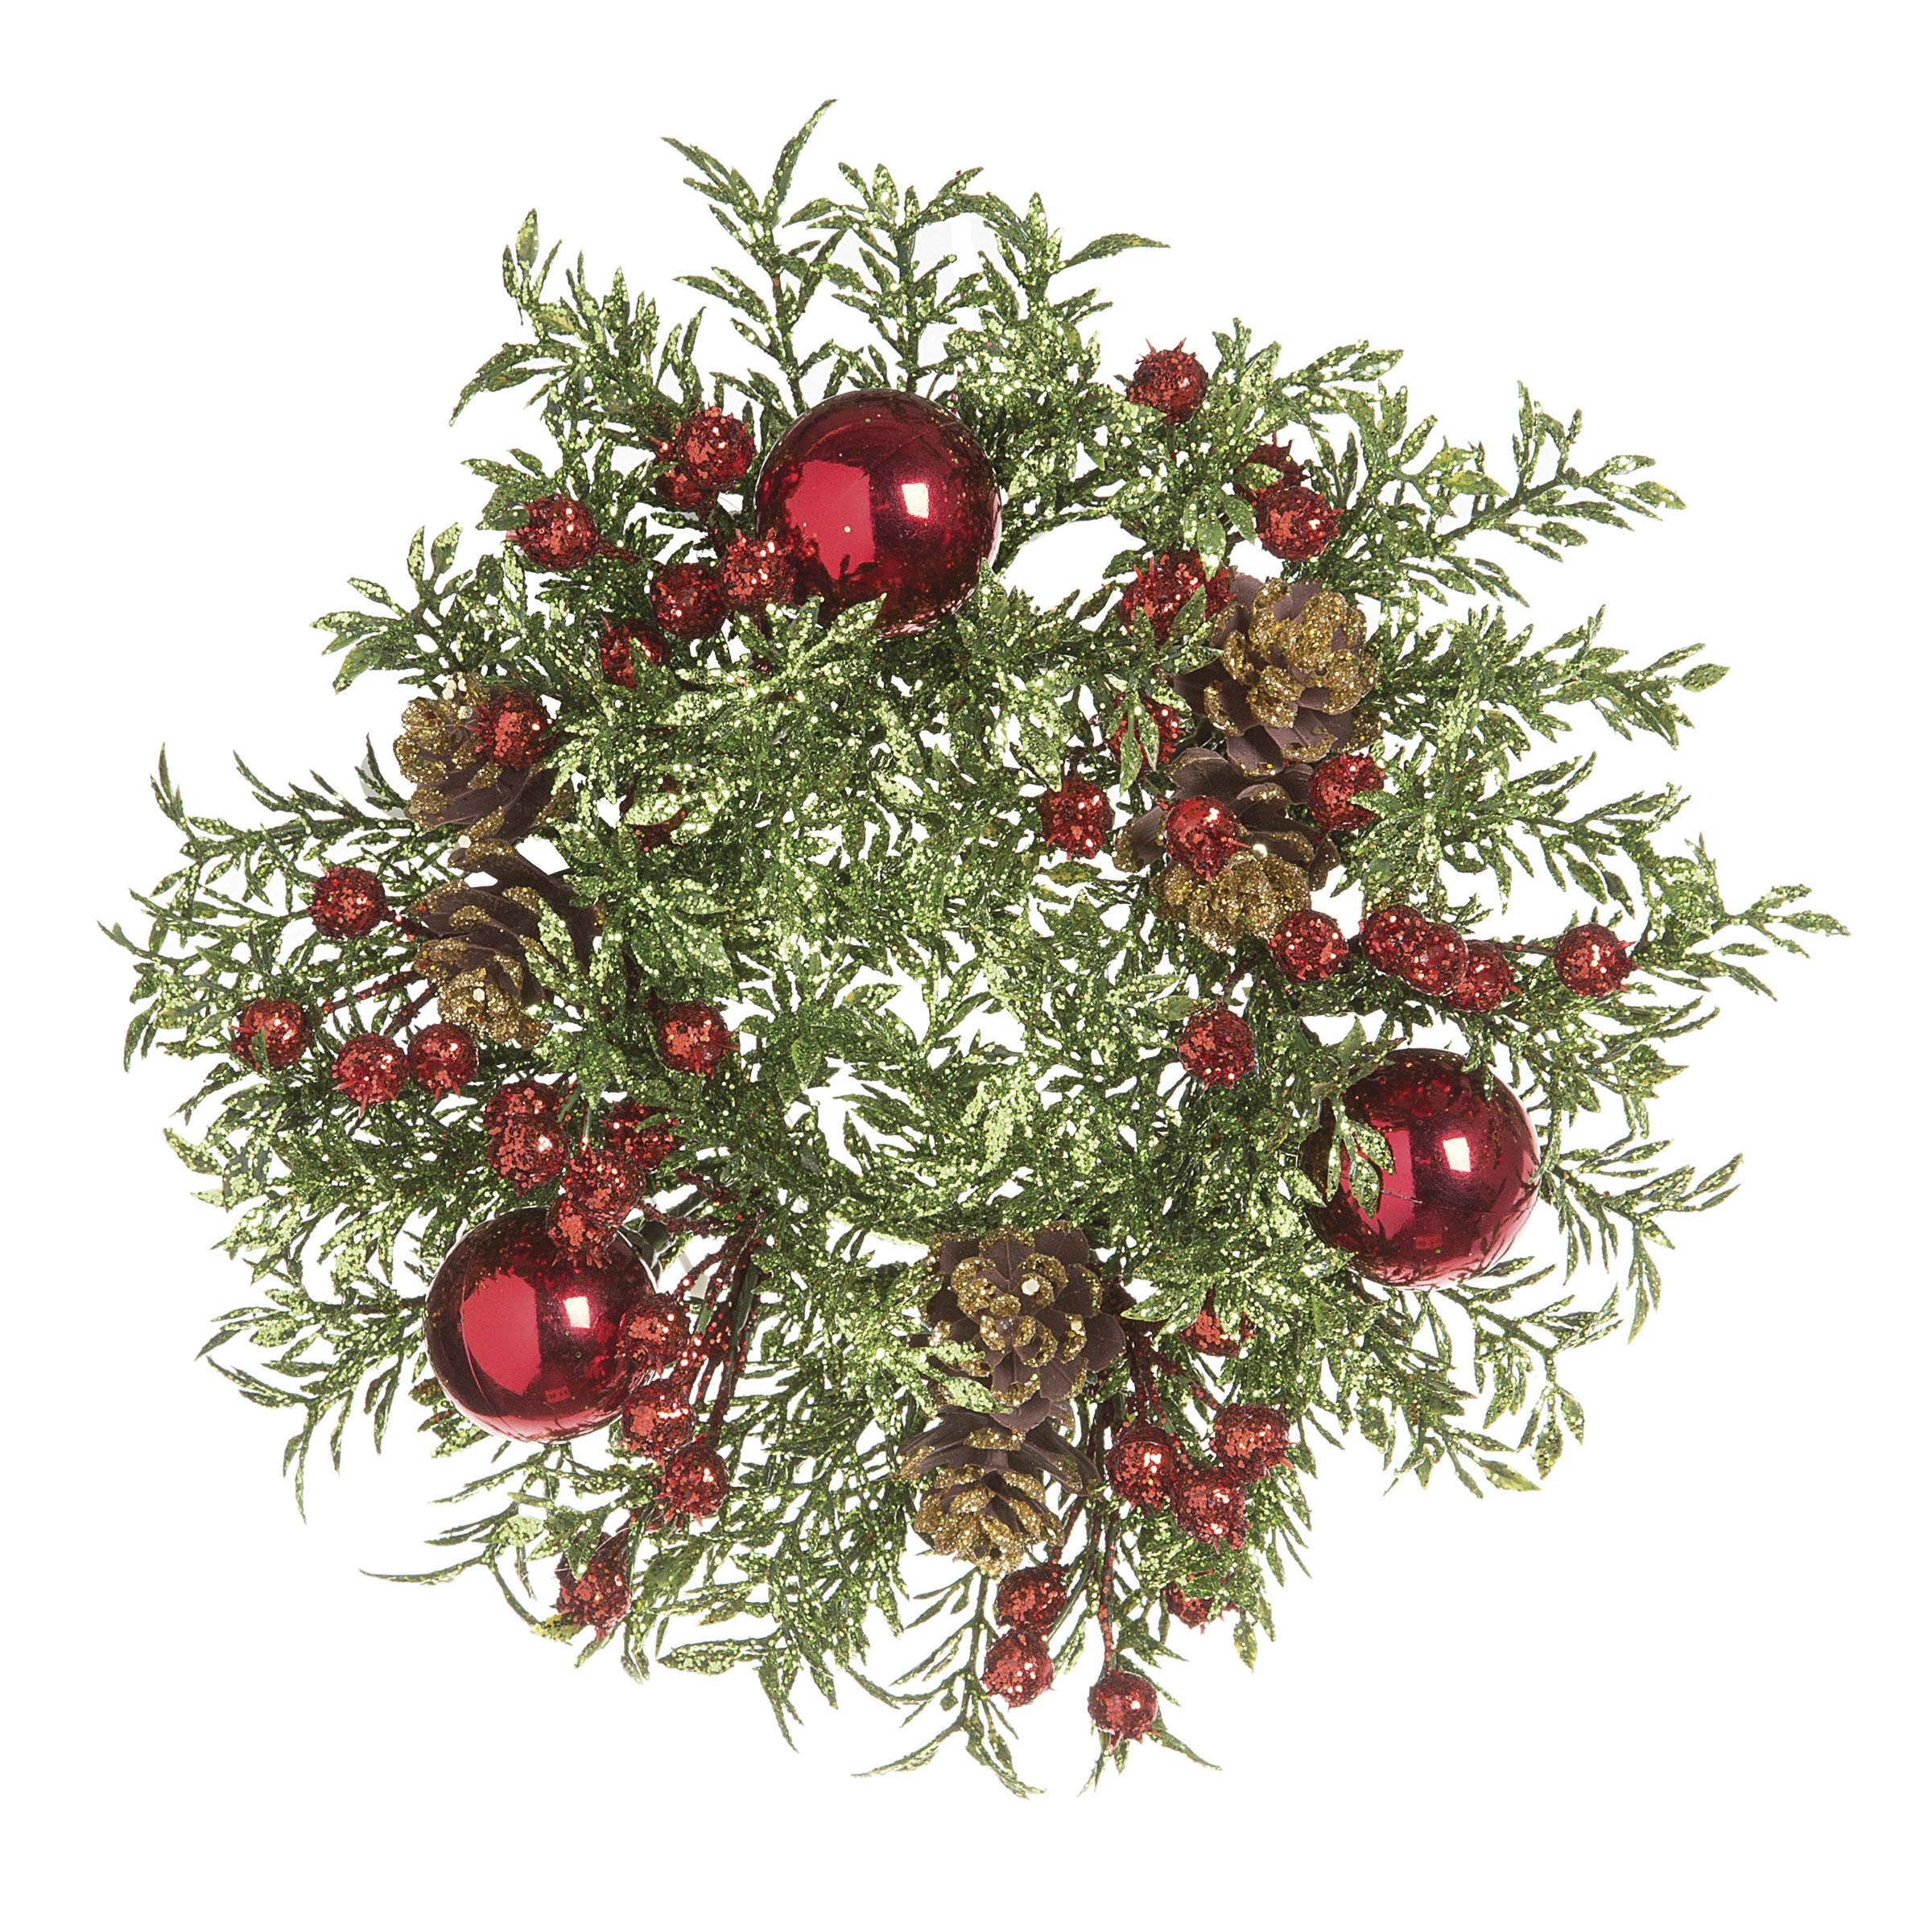 Ten Waterloo Christmas Candle Ring - Mini Wreath for 3 inch Pillar Style Candle Glittered Greens Red Berries Pine Cones with Red Ball Ornaments - Artificial Pine